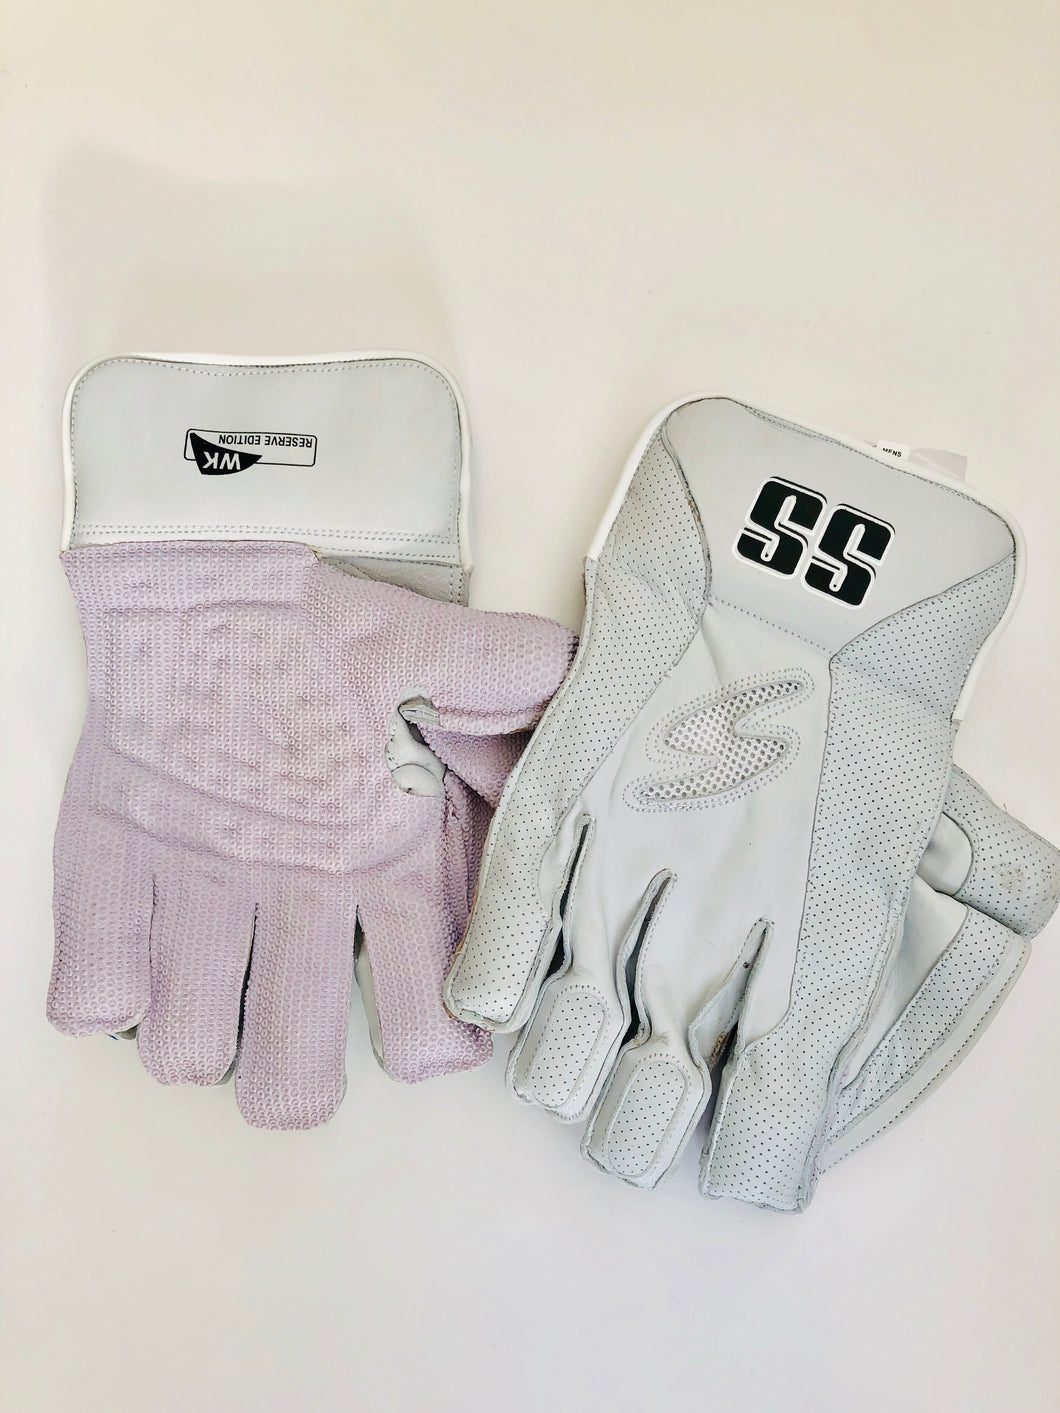 SS TON Reserve Edition Wicket Keeping Cricket Gloves | All White - DKP Cricket Online